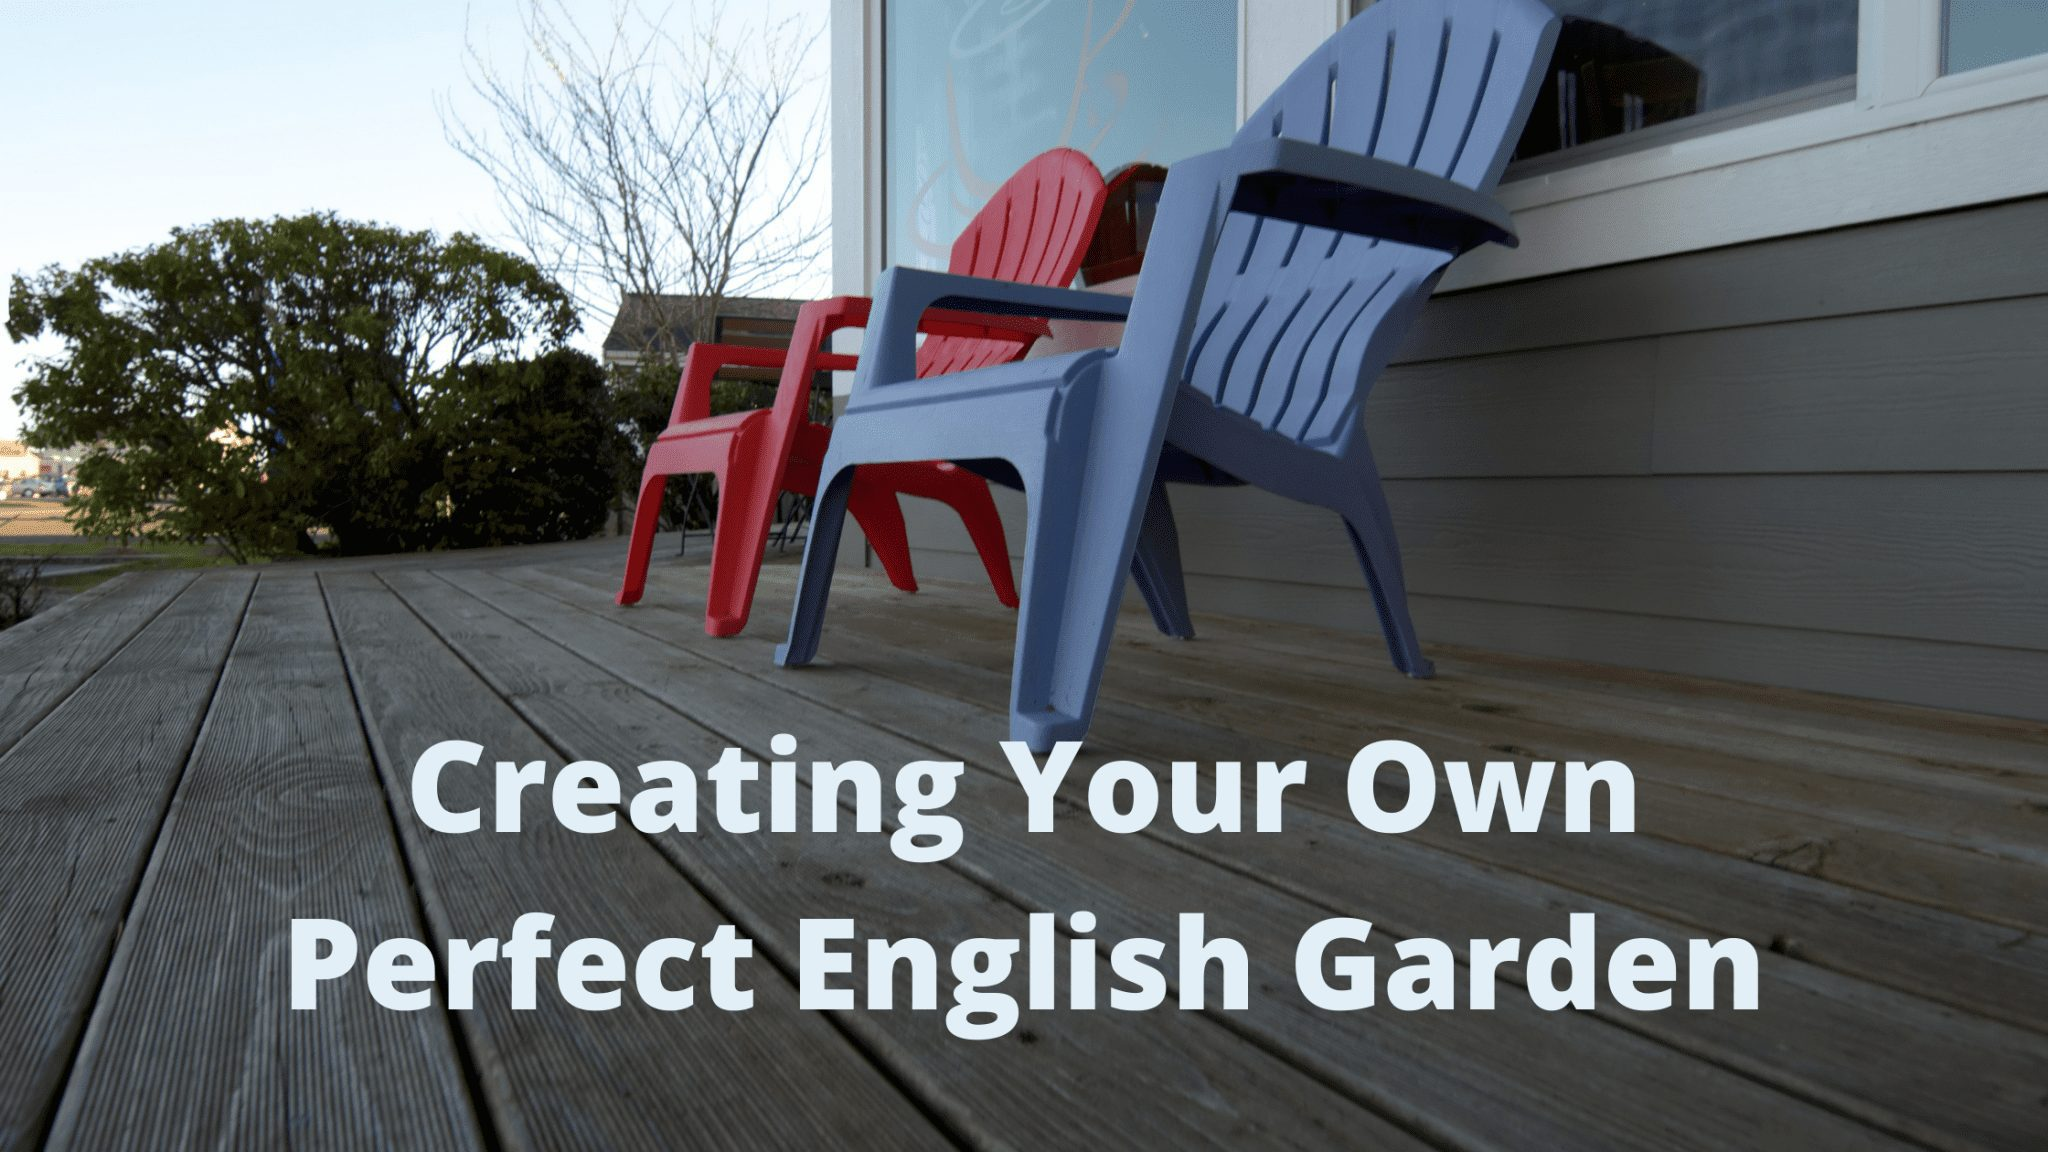 Creating Your Own Perfect English Garden